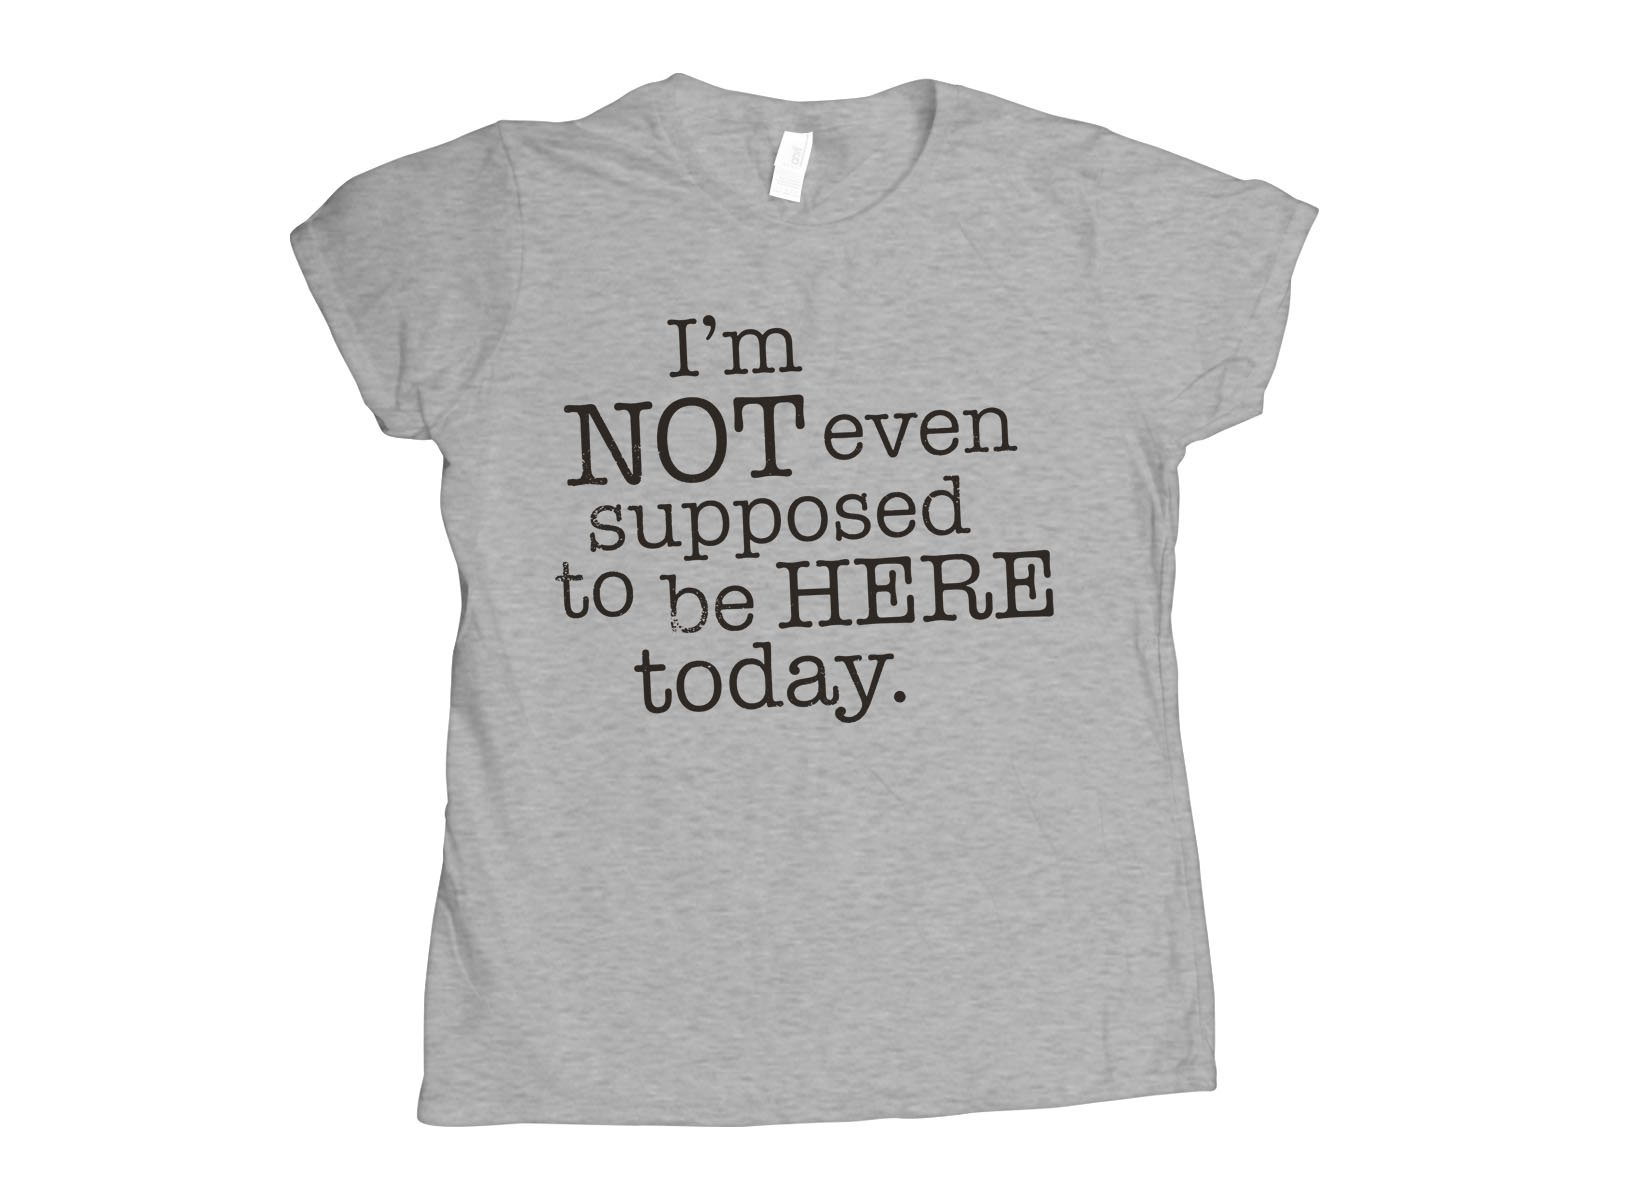 I'm Not Even Supposed To Be Here Today on Womens T-Shirt